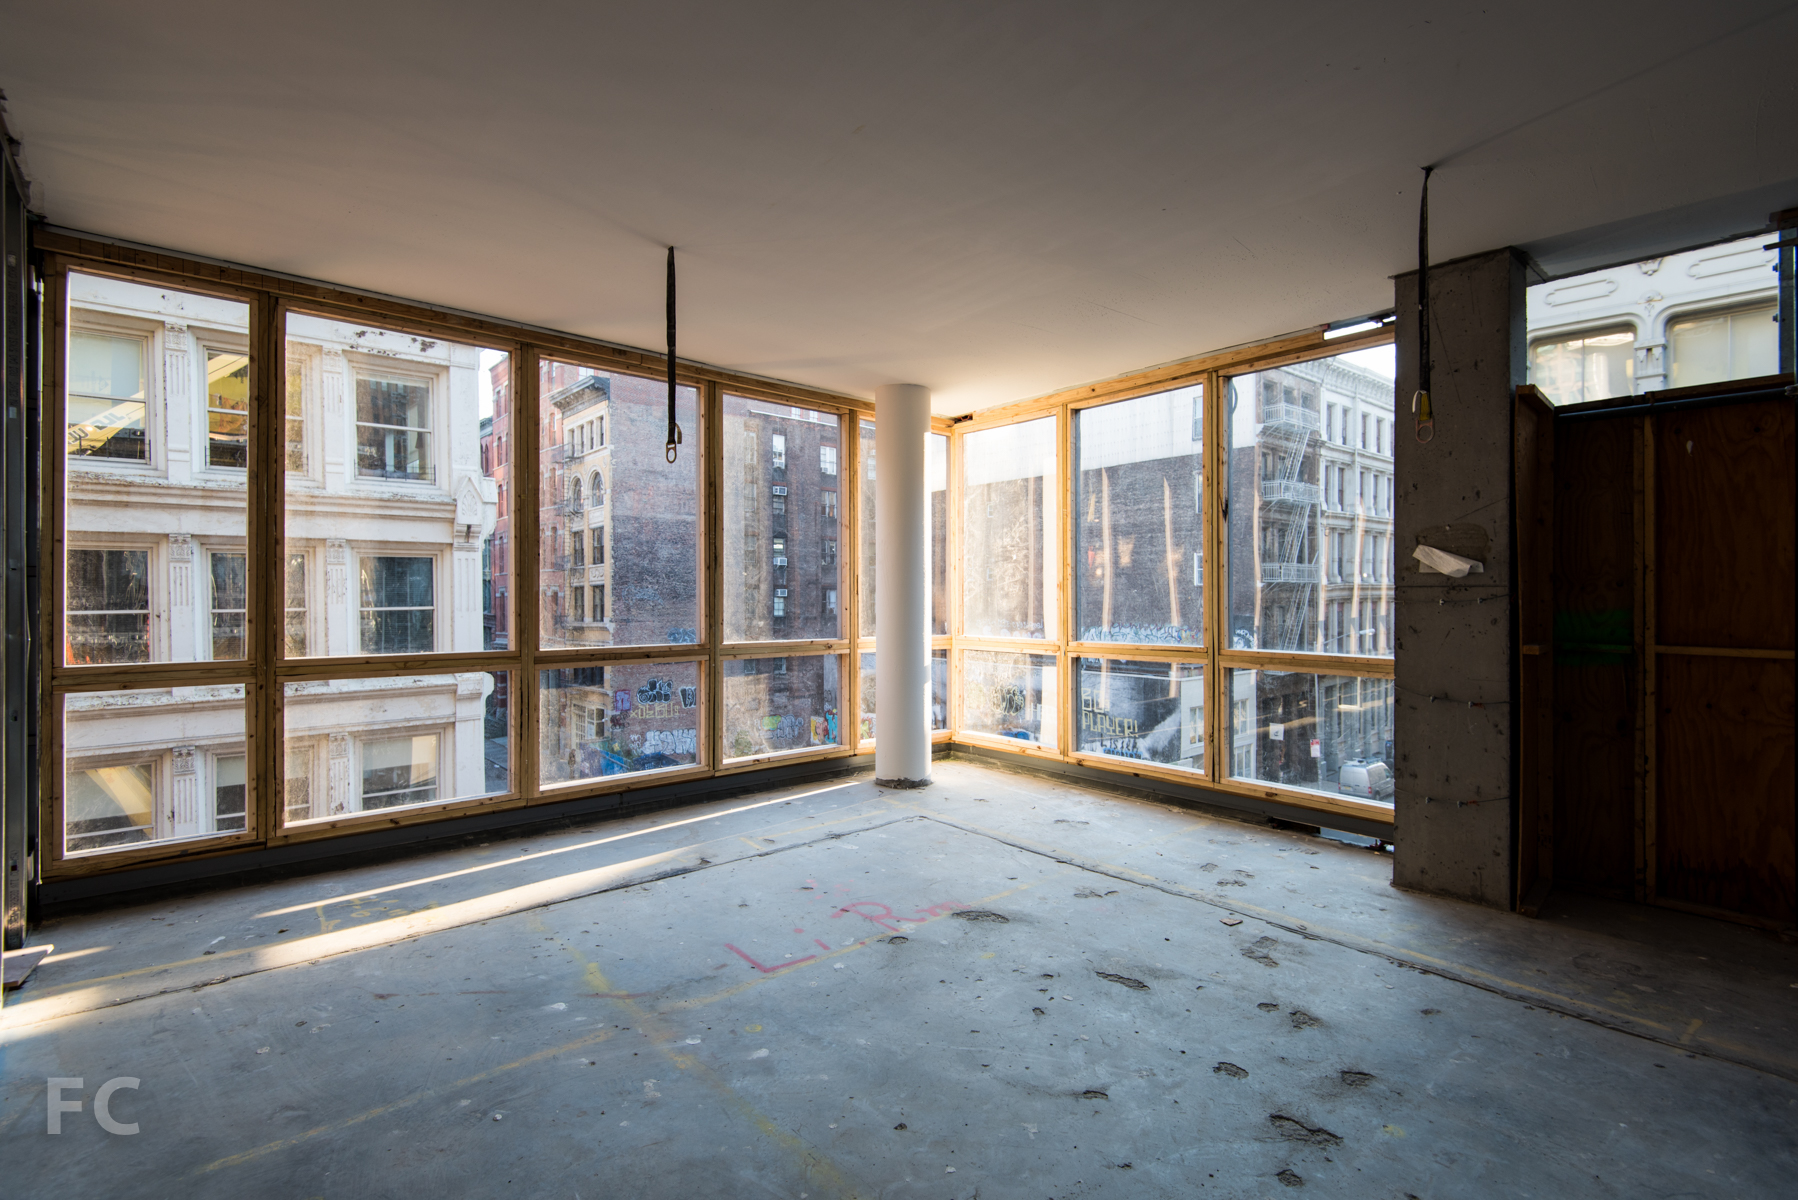 The corner living room of the B unit, looking out onto the intersection of Grand Street and Wooster Street.